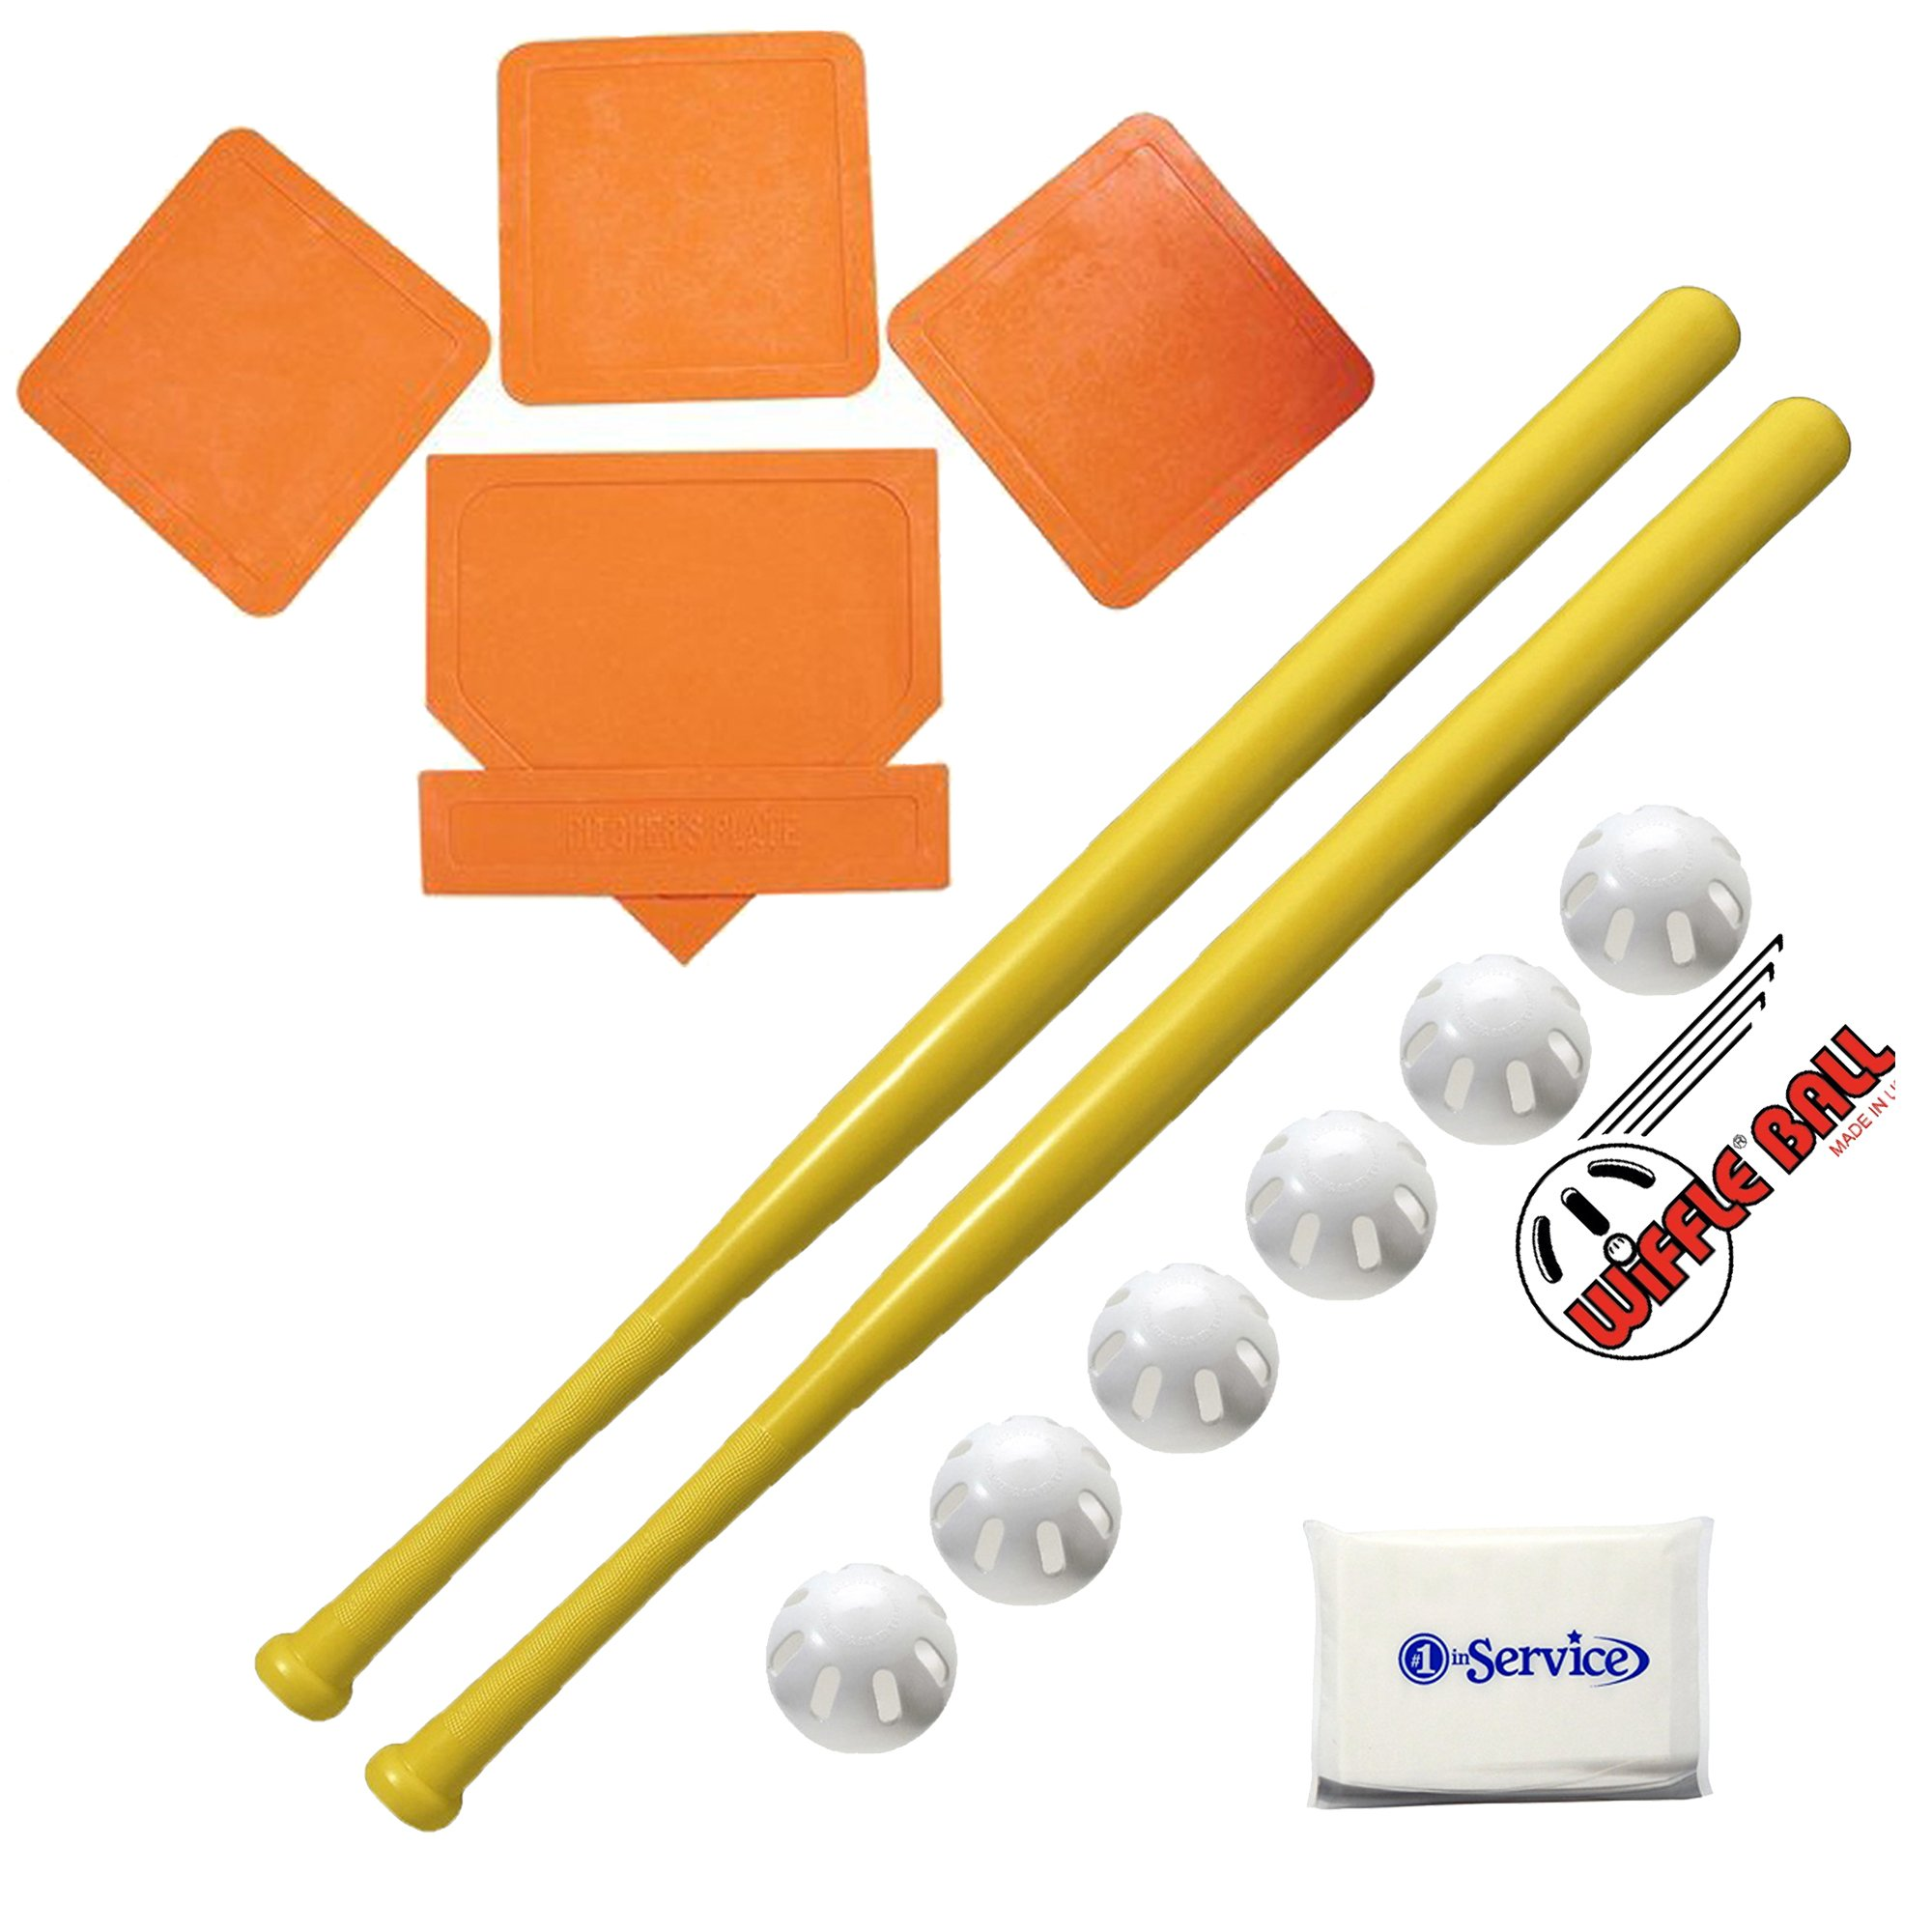 Wiffle Ball 6 Baseballs Official Size - 6 Pack and Wiffle Ball 32'' Bats 2 Pack, BSN Orange Throw Down Bases (5 Piece), Gift Set Bundle + Bonus NOIS Tissue Pack